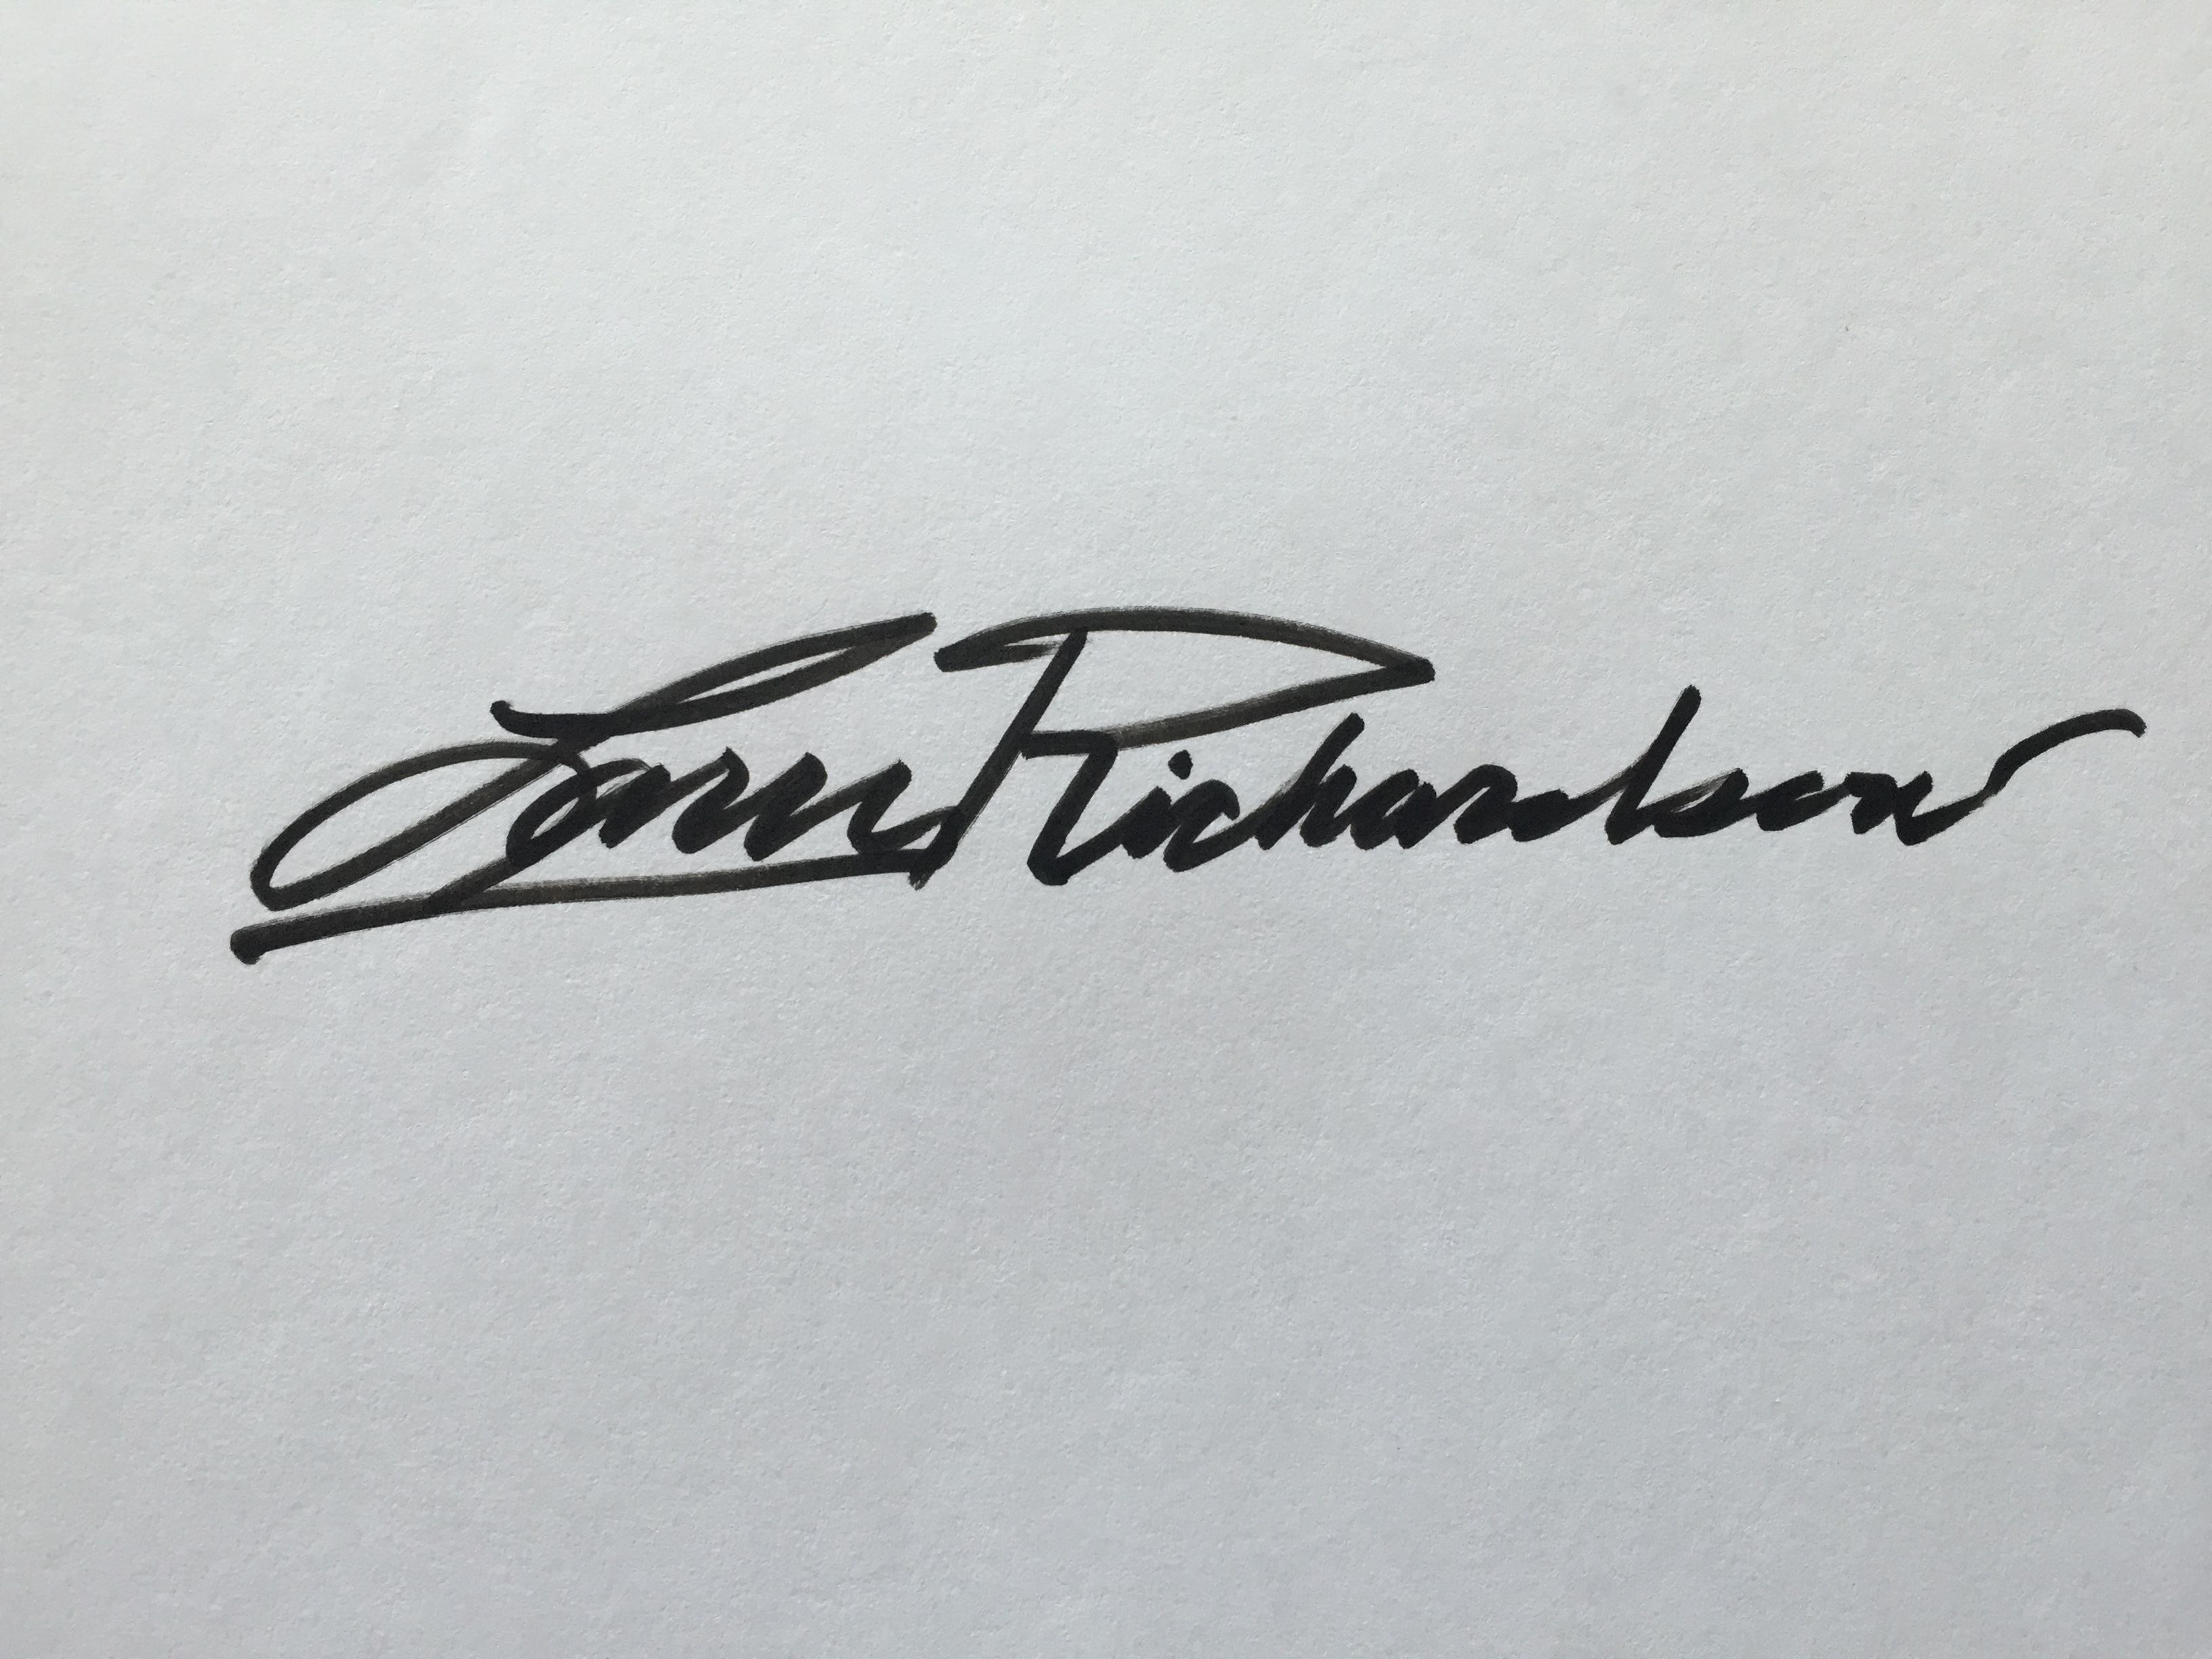 Larry Richardson Signature